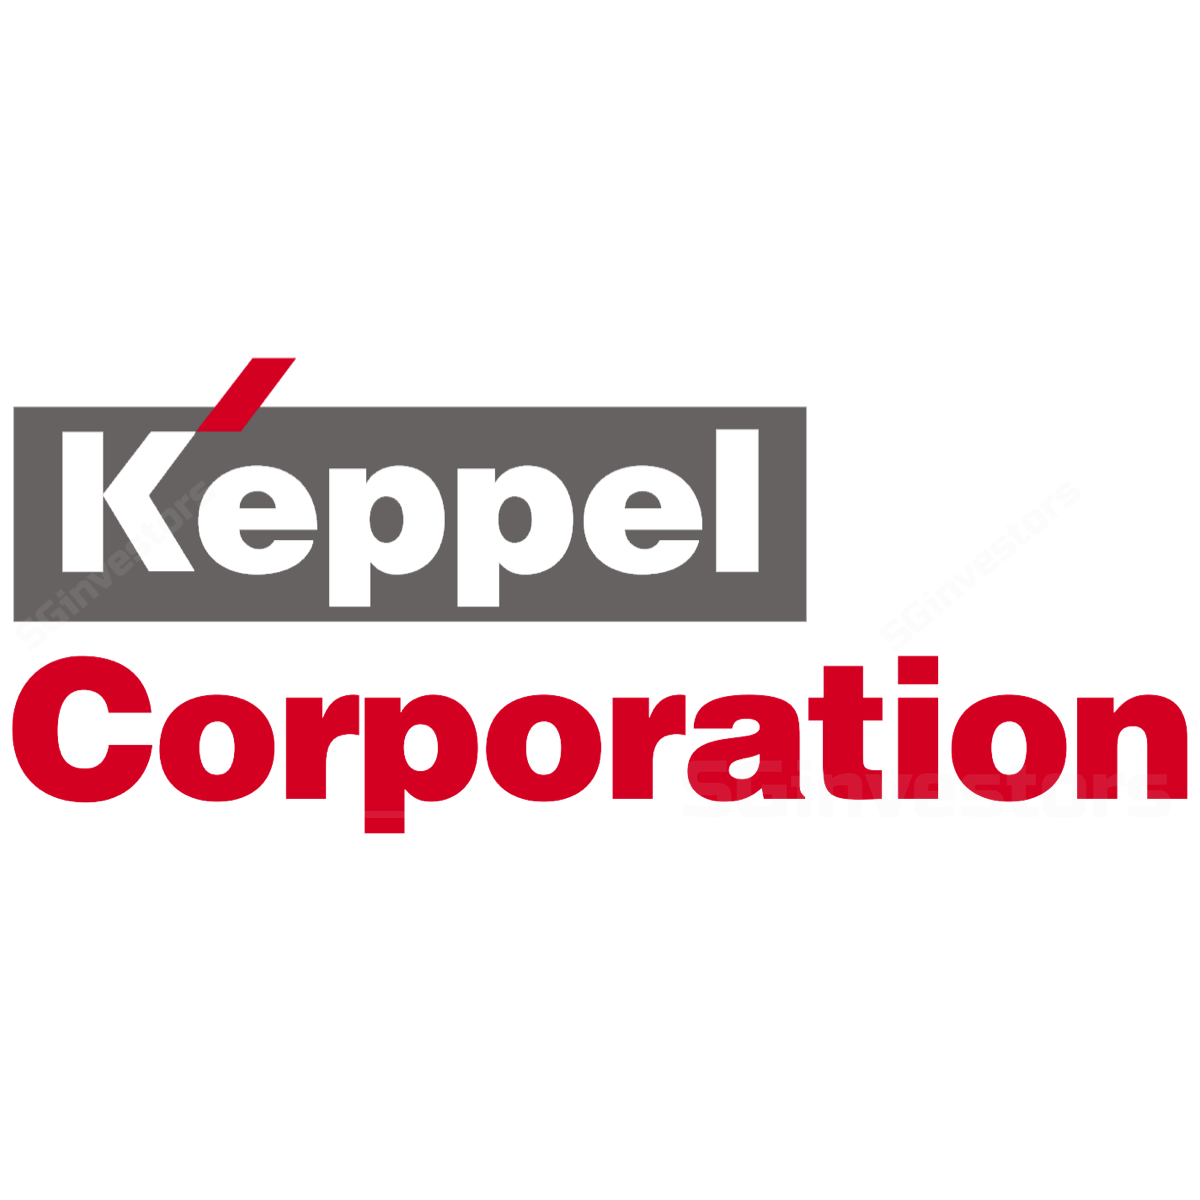 Keppel Corporation - UOB Kay Hian Research 2018-07-20: 2q18: Core Earnings Below Expectations; Makes Up With Special Dividend